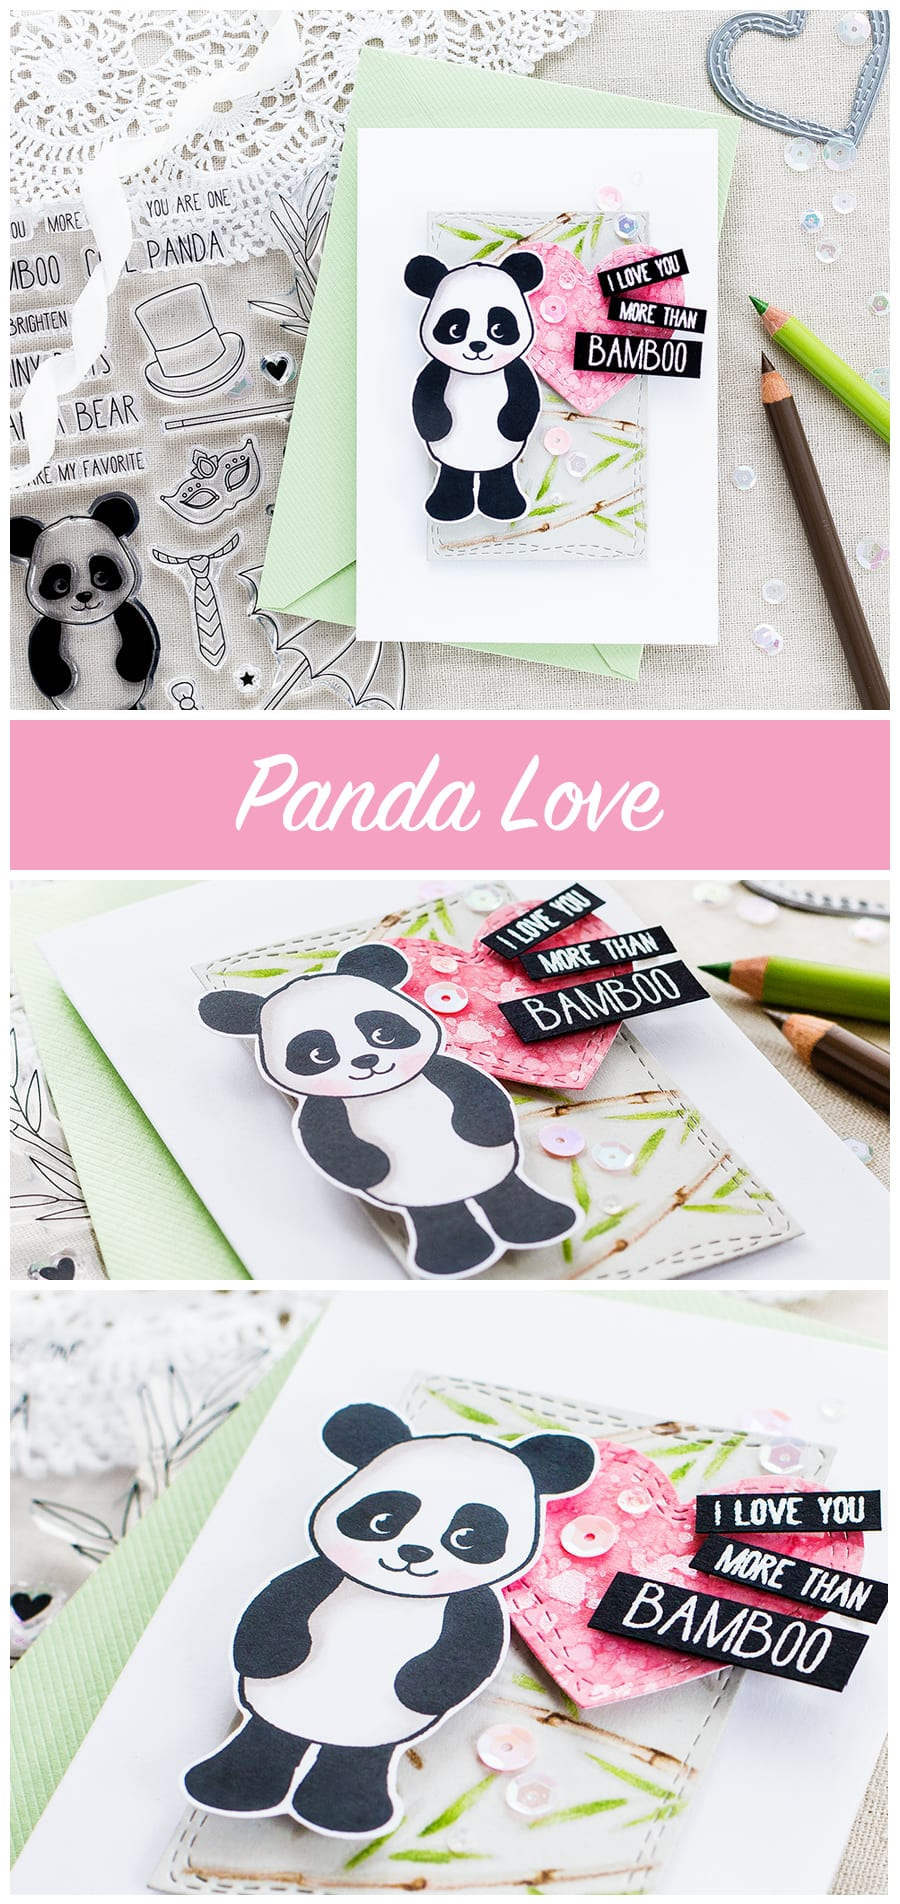 Cute panda card by Debby Hughes. Find out more by clicking on the following link: http://limedoodledesign.com/2017/06/panda-love/